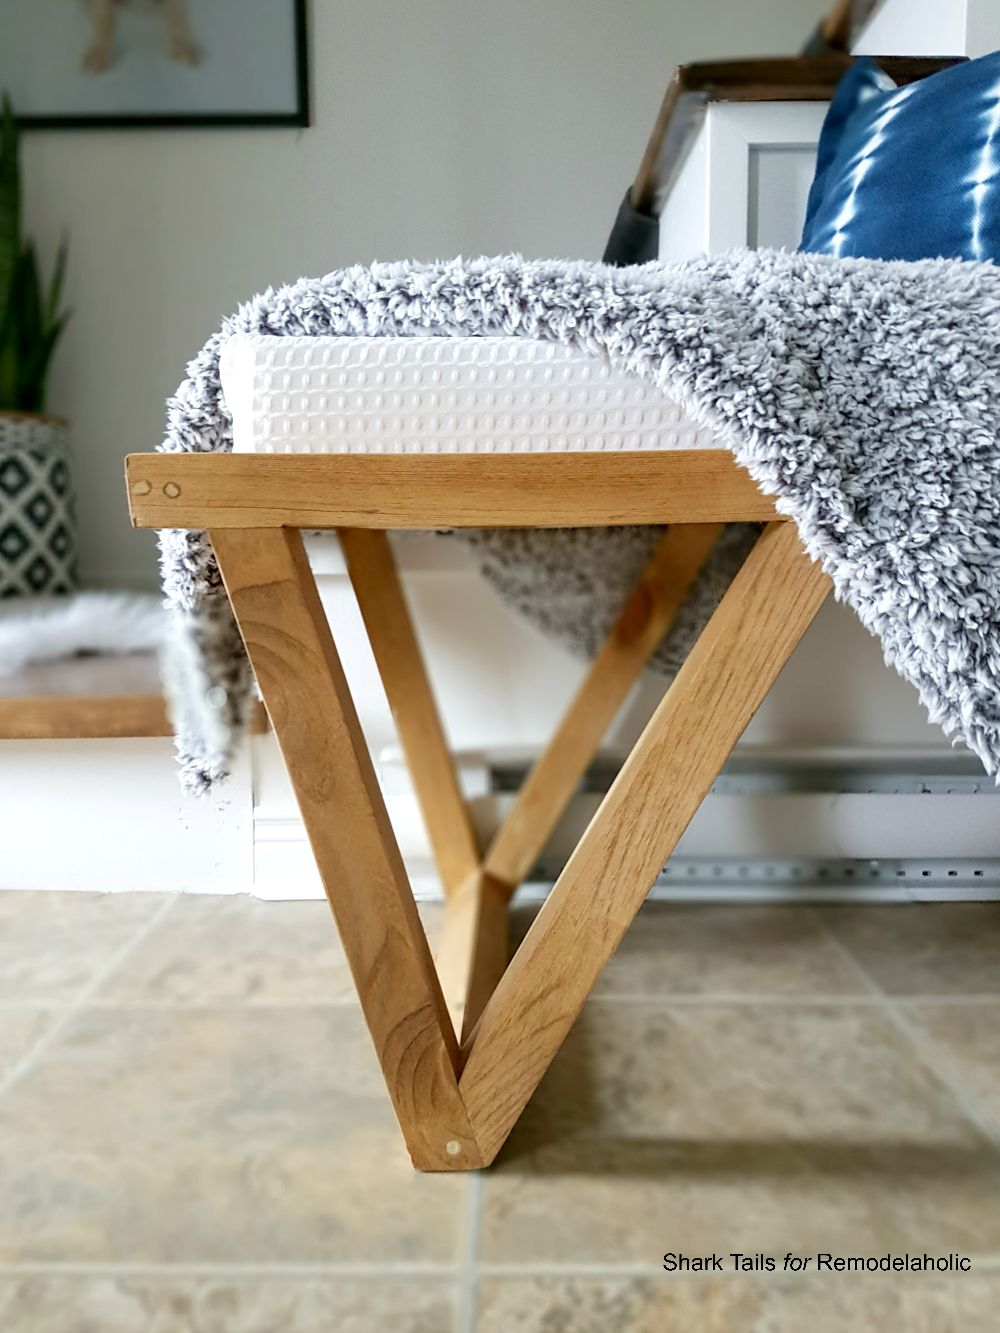 Free Building Plan And Tutorial Mid Century Modern Inspired Triangle Leg Bench Mid Century Modern Furniture Plans Diy Cushion Covers Woodworking Bench Plans